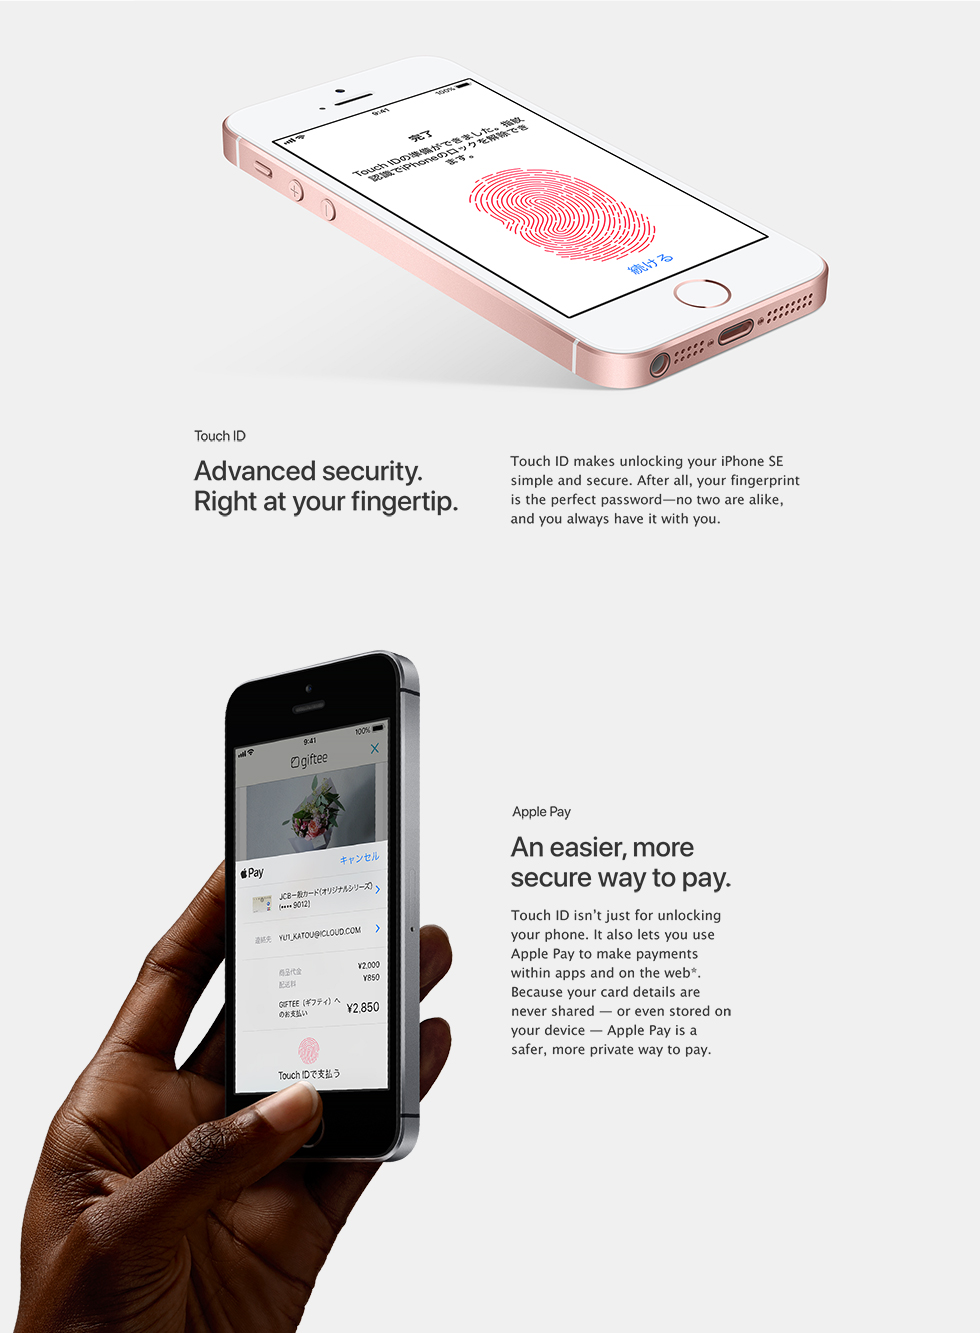 Advanced security. Right at your fingertip. Touch ID makes unlocking your iPhone SE simple and secure. After all, your fingerprint is the perfect password - no two are alike, and you always have it with you. An easier, more secure way to pay. Touch ID isn't just for unlocking your phone. It also lets you use Apple Pay to make payments within apps and on the web*. Because your card details are never shared - or even stored on your device - Apple